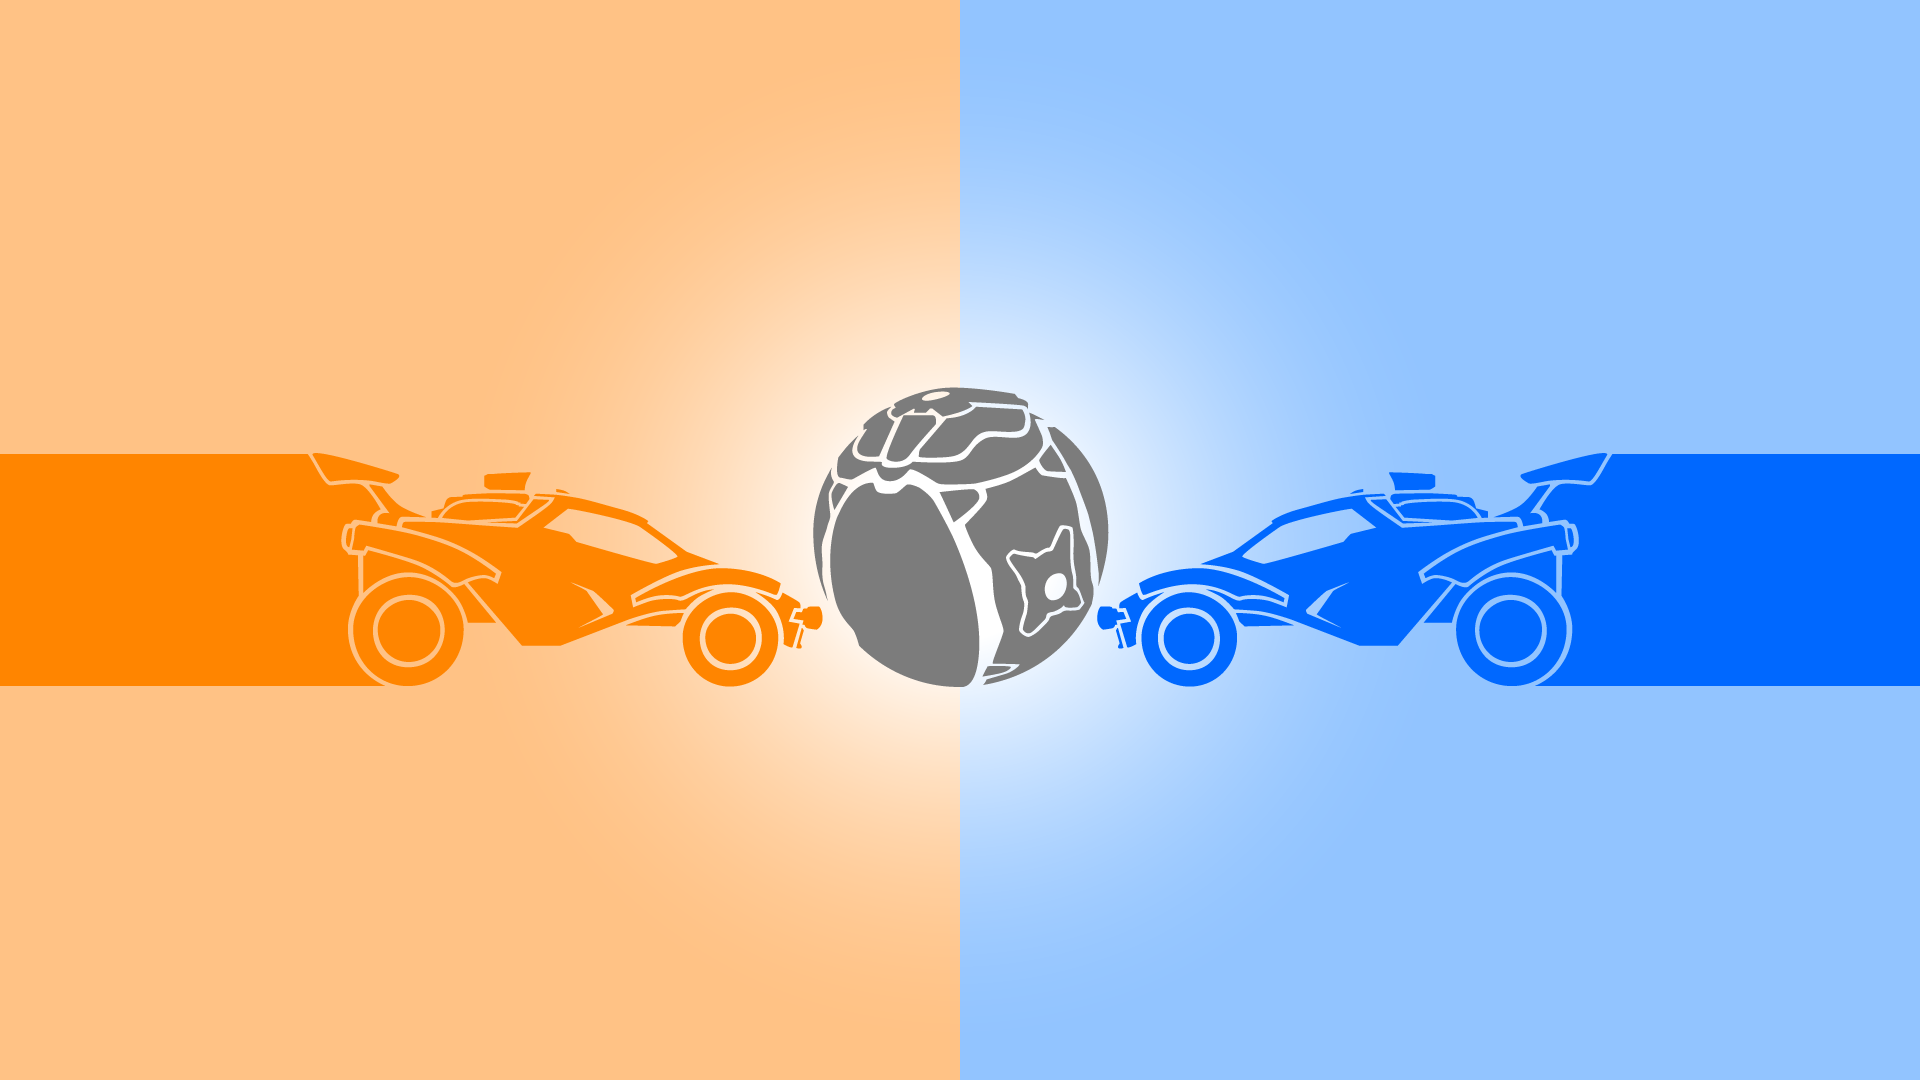 Oc Made A Wallpaper For Those That Like Rocket League S Octane Car Rocket League Wallpaper Rocket League Creative Games